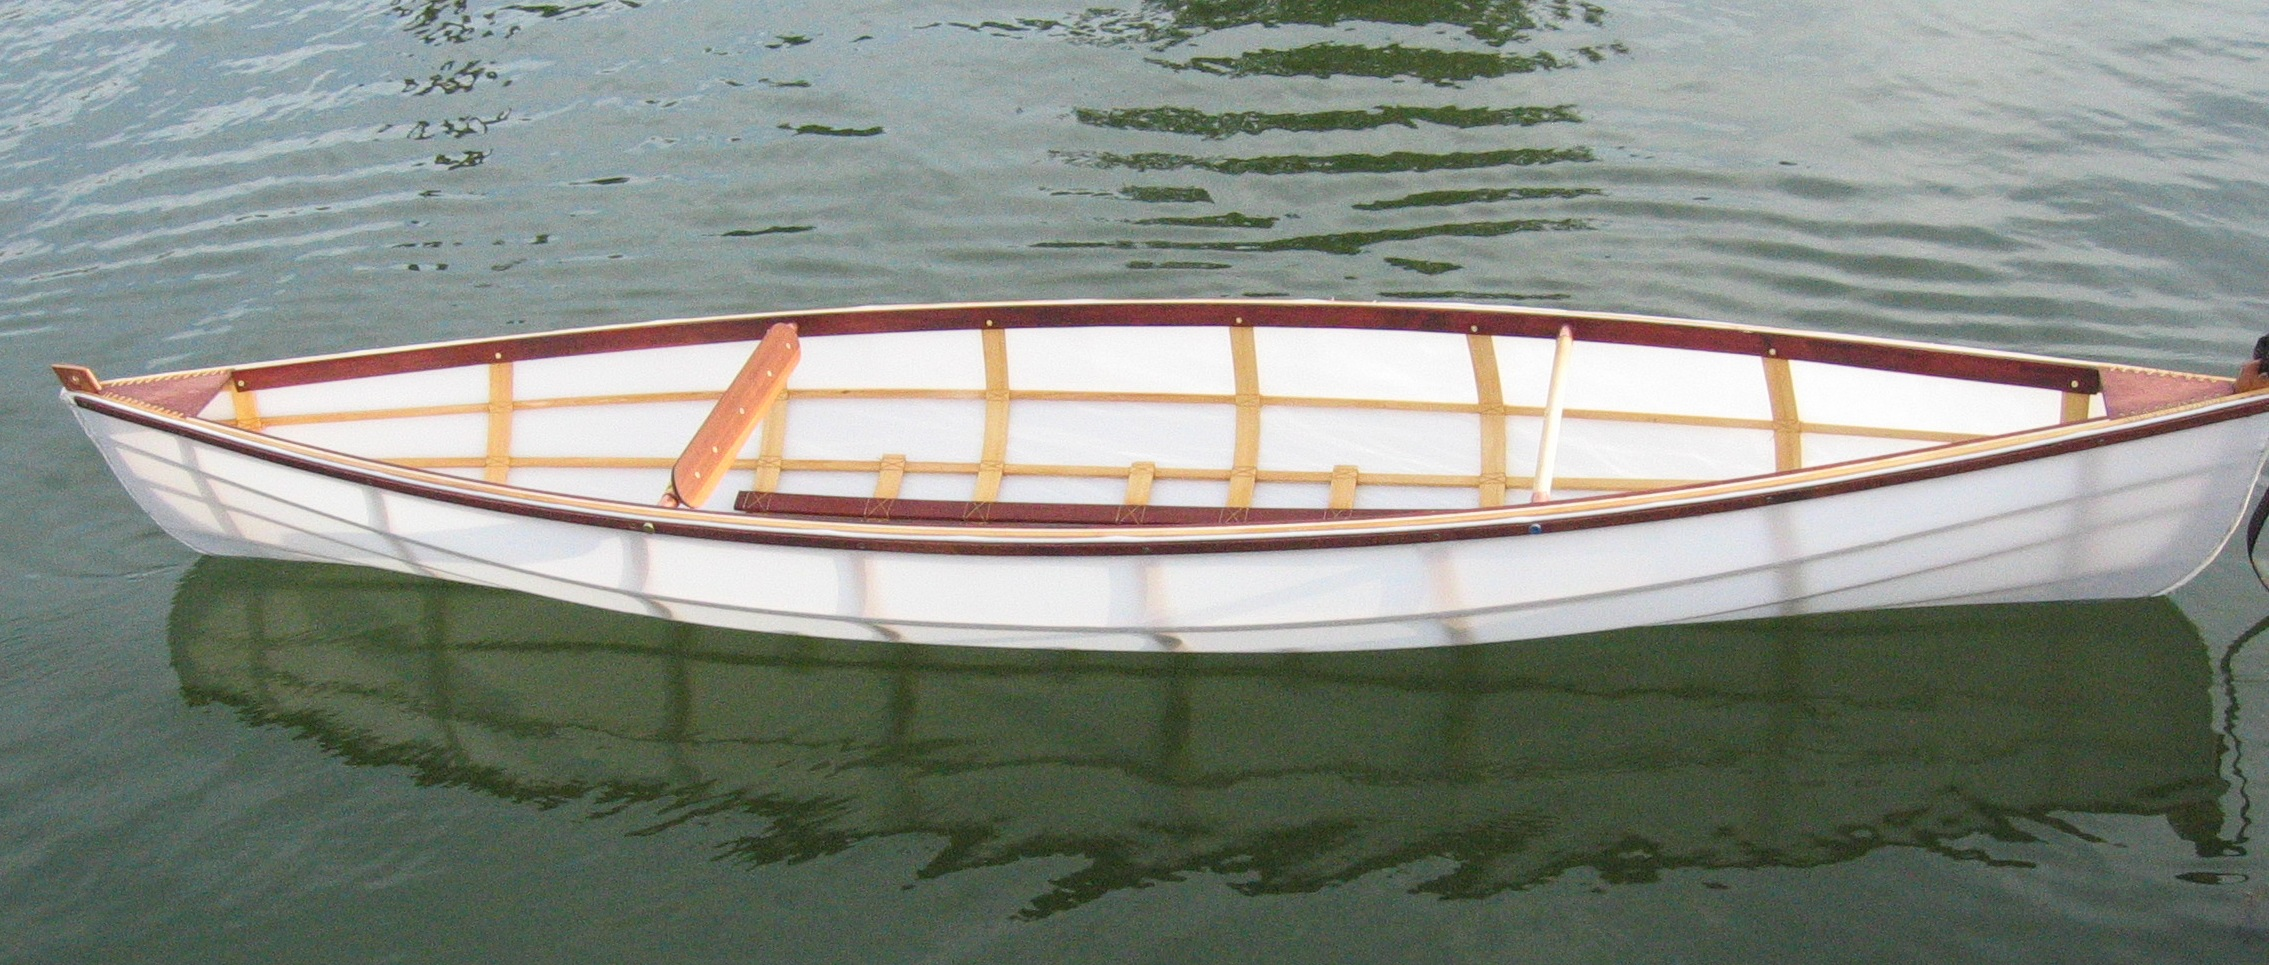 Instant get Ultralight canoe plans ~ Alum